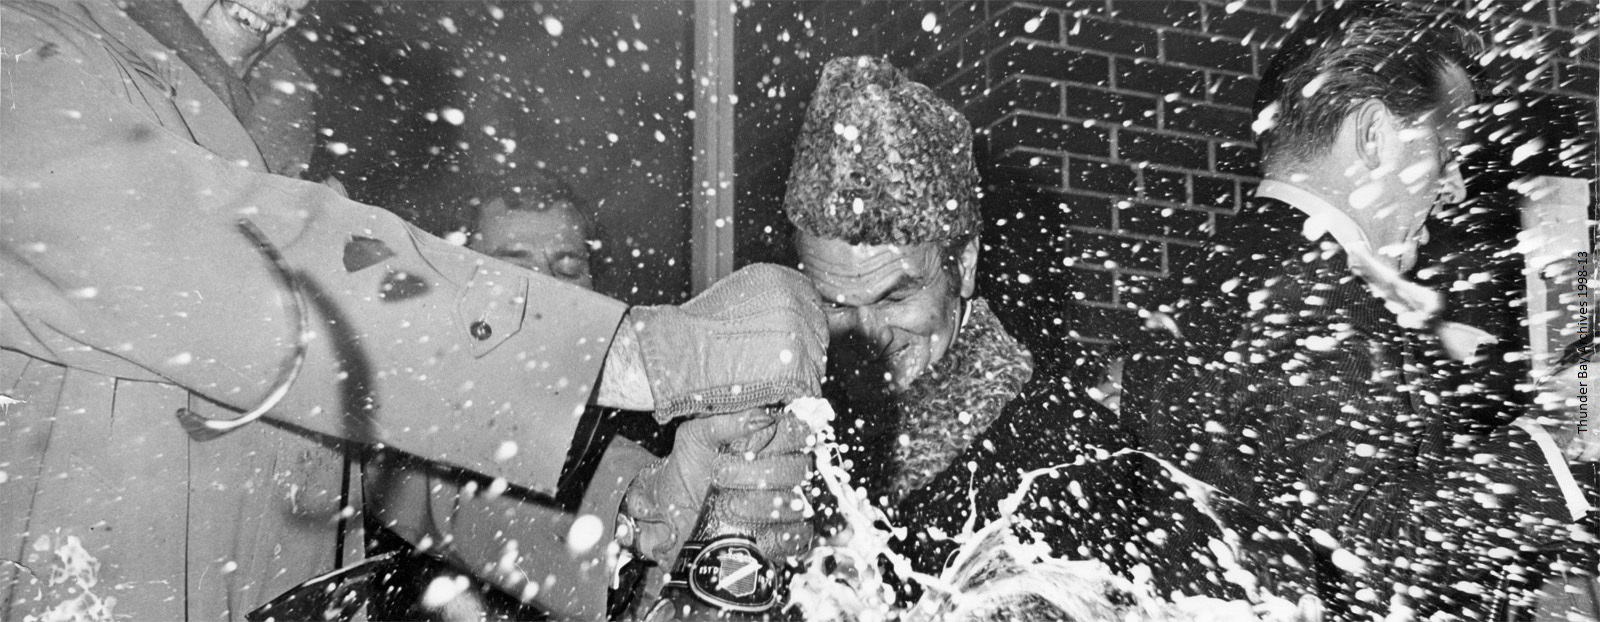 Four men are shown smashing a bottle of champagne as it sprays